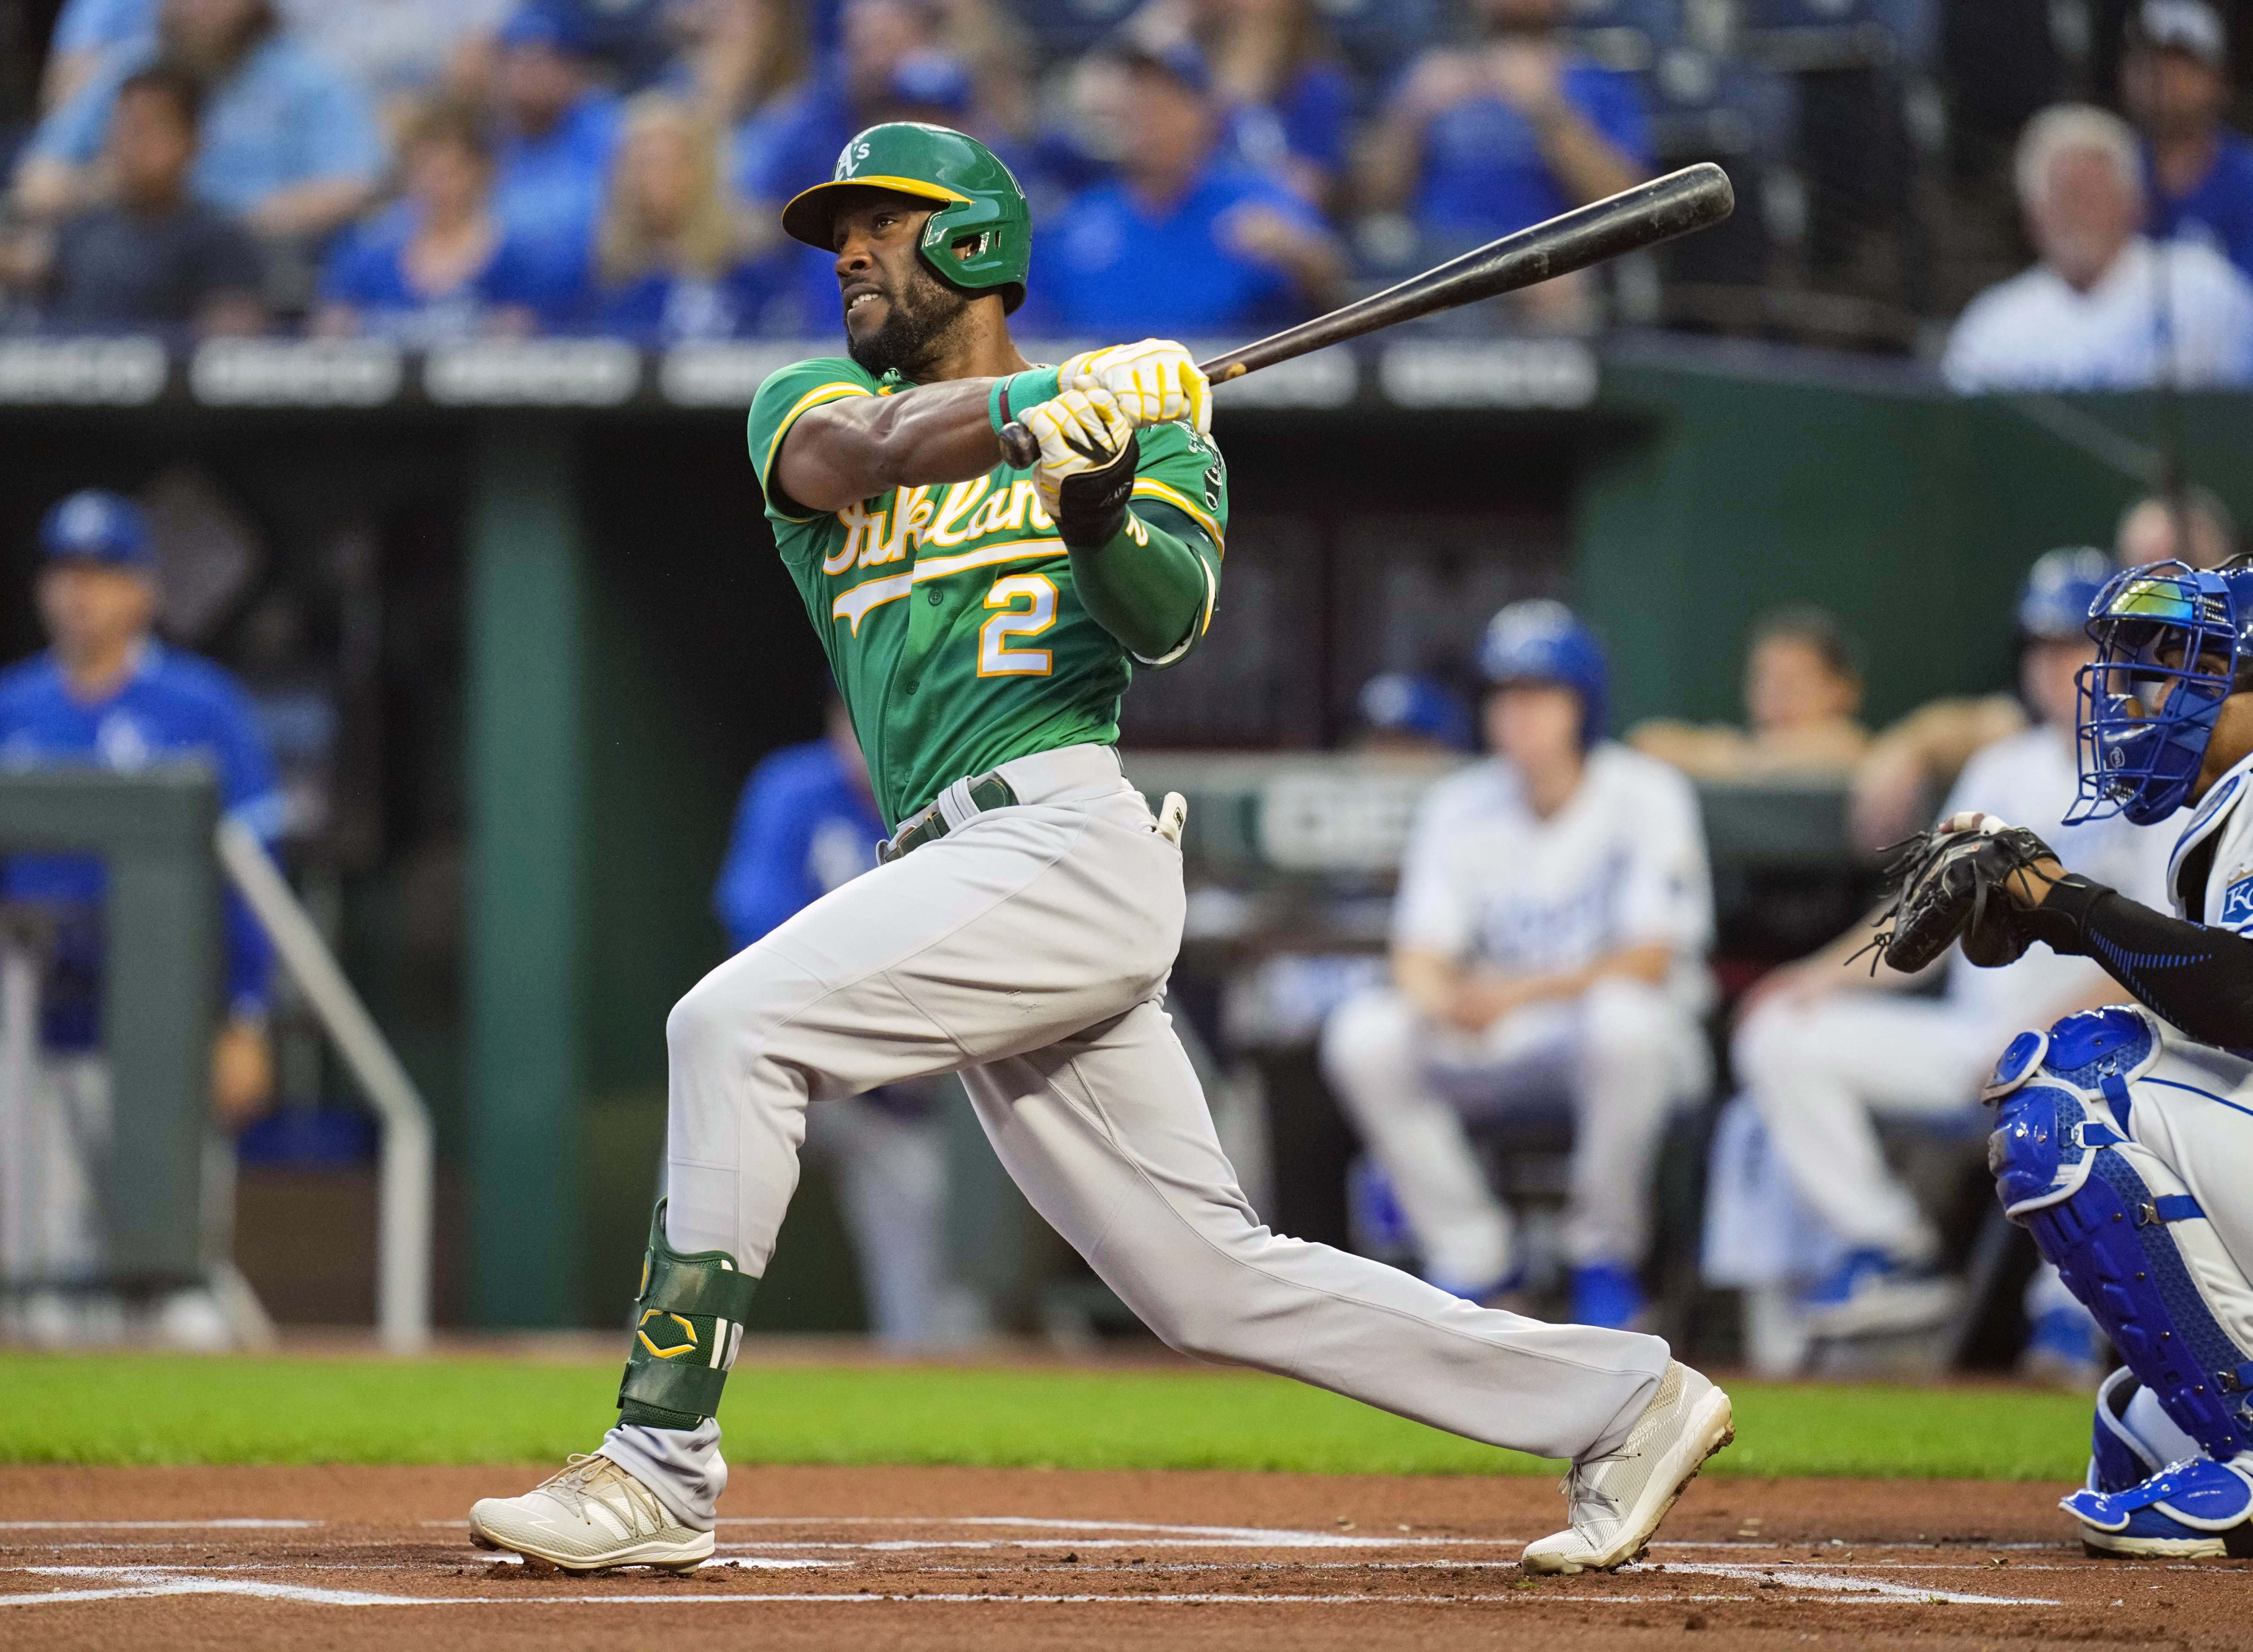 Oakland Athletics center fielder Starling Marte (2) hits a double against the Kansas City Royals during the first inning at Kauffman Stadium.